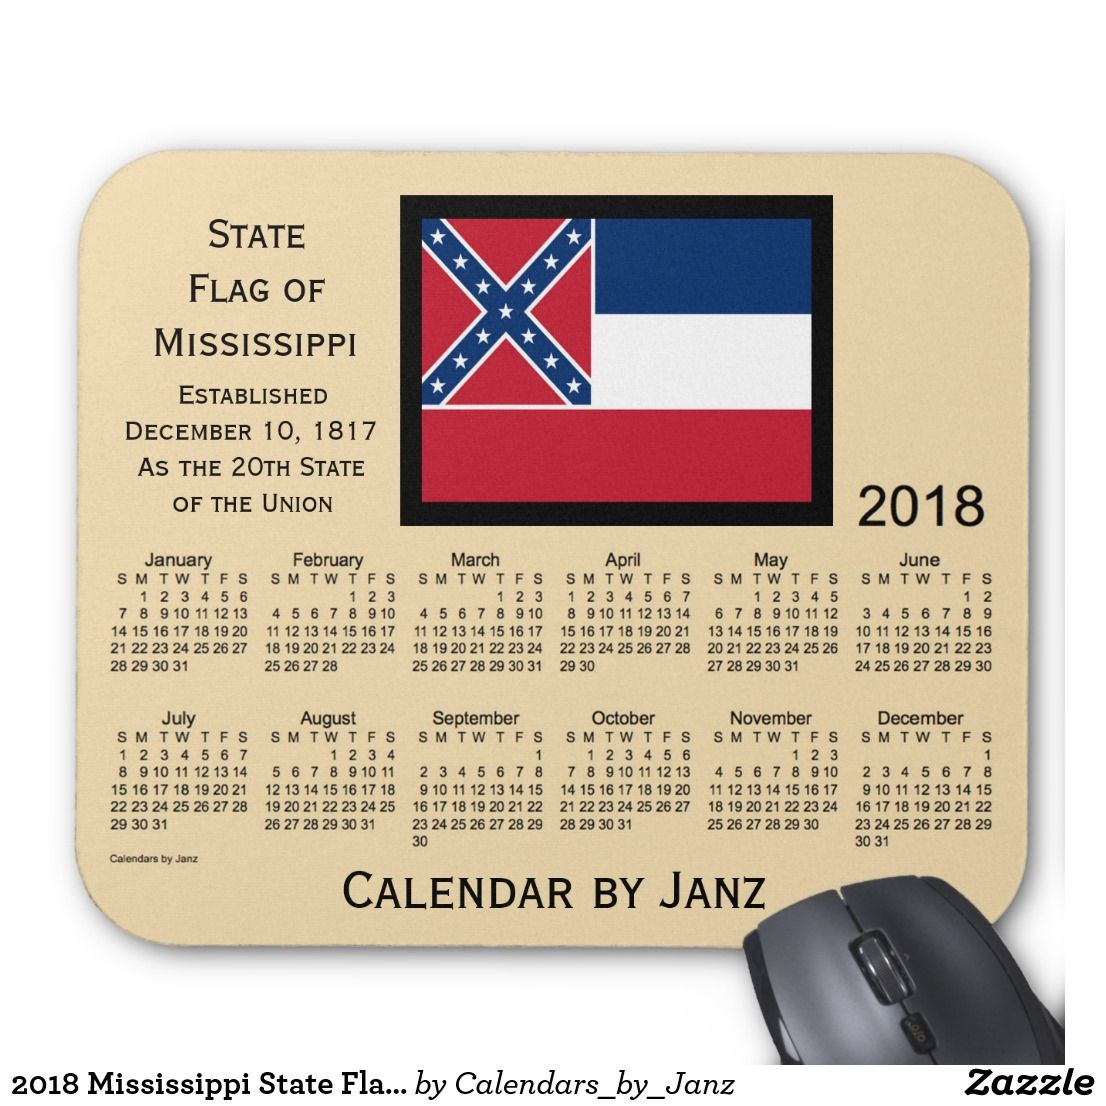 2018 Mississippi State Flag Calendar by Janz Mouse Pad